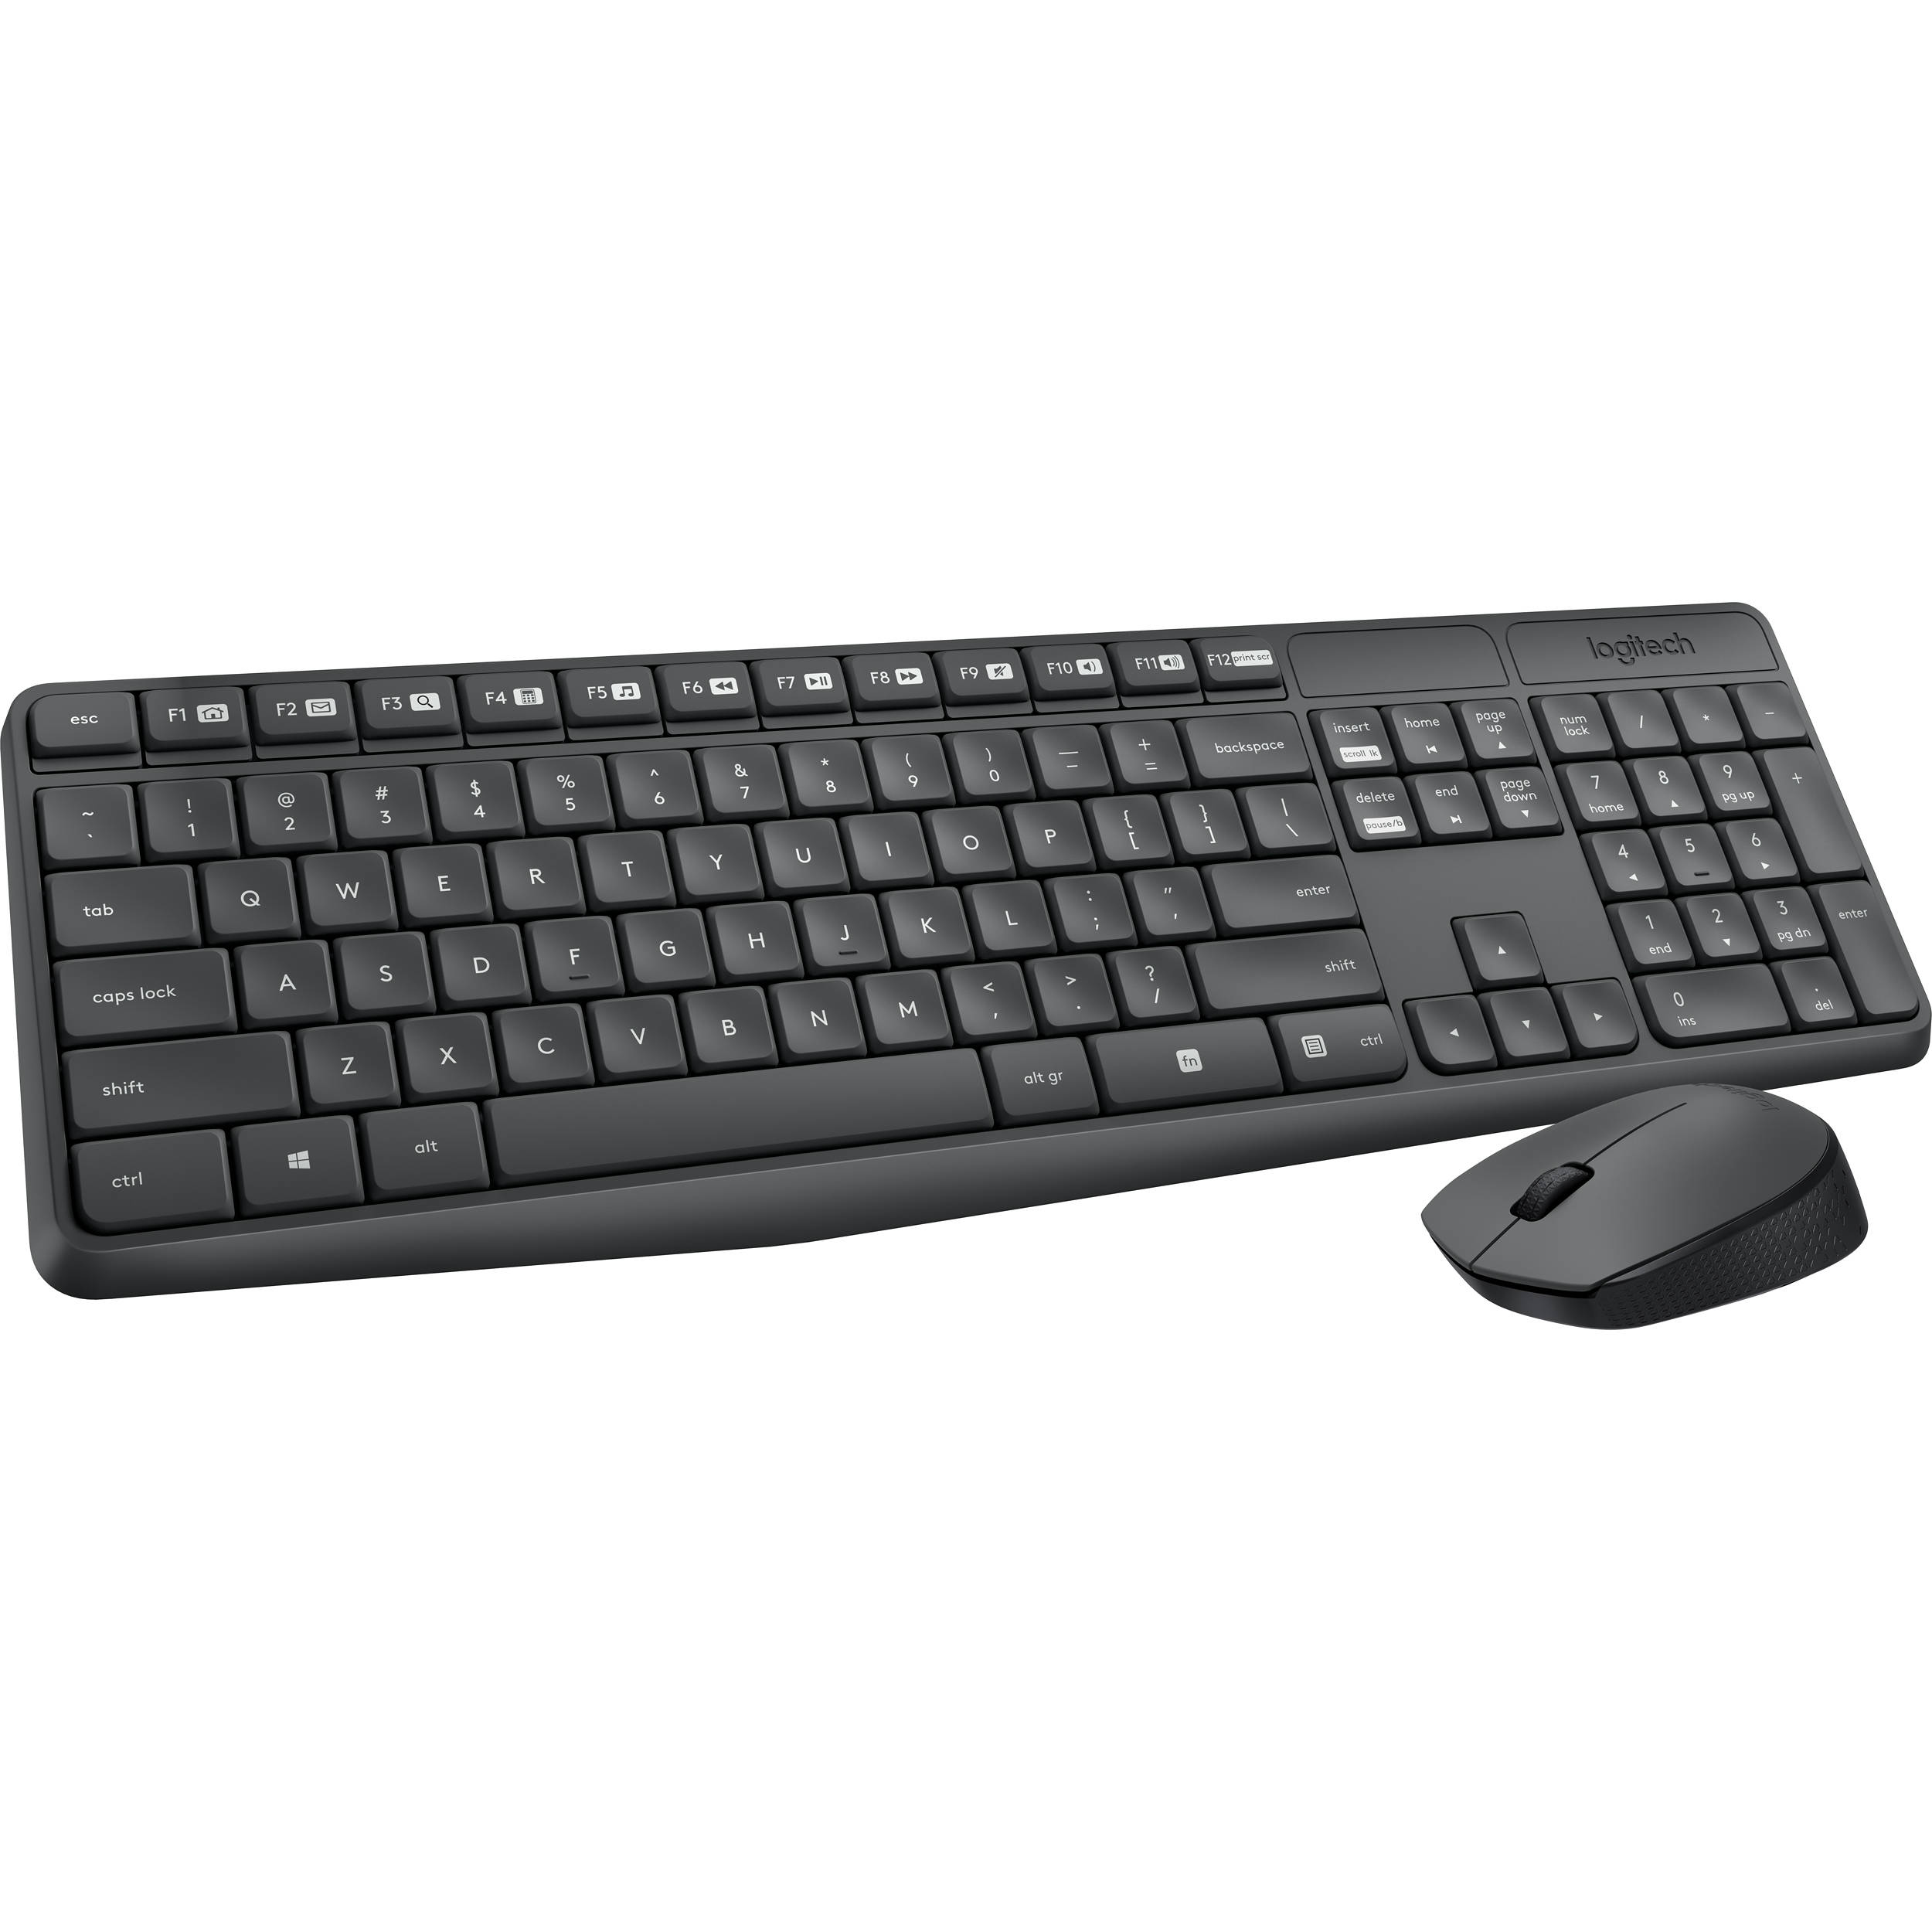 f5ff78520fd Logitech MK235 Wireless Keyboard and Mouse 920-007897 B&H Photo